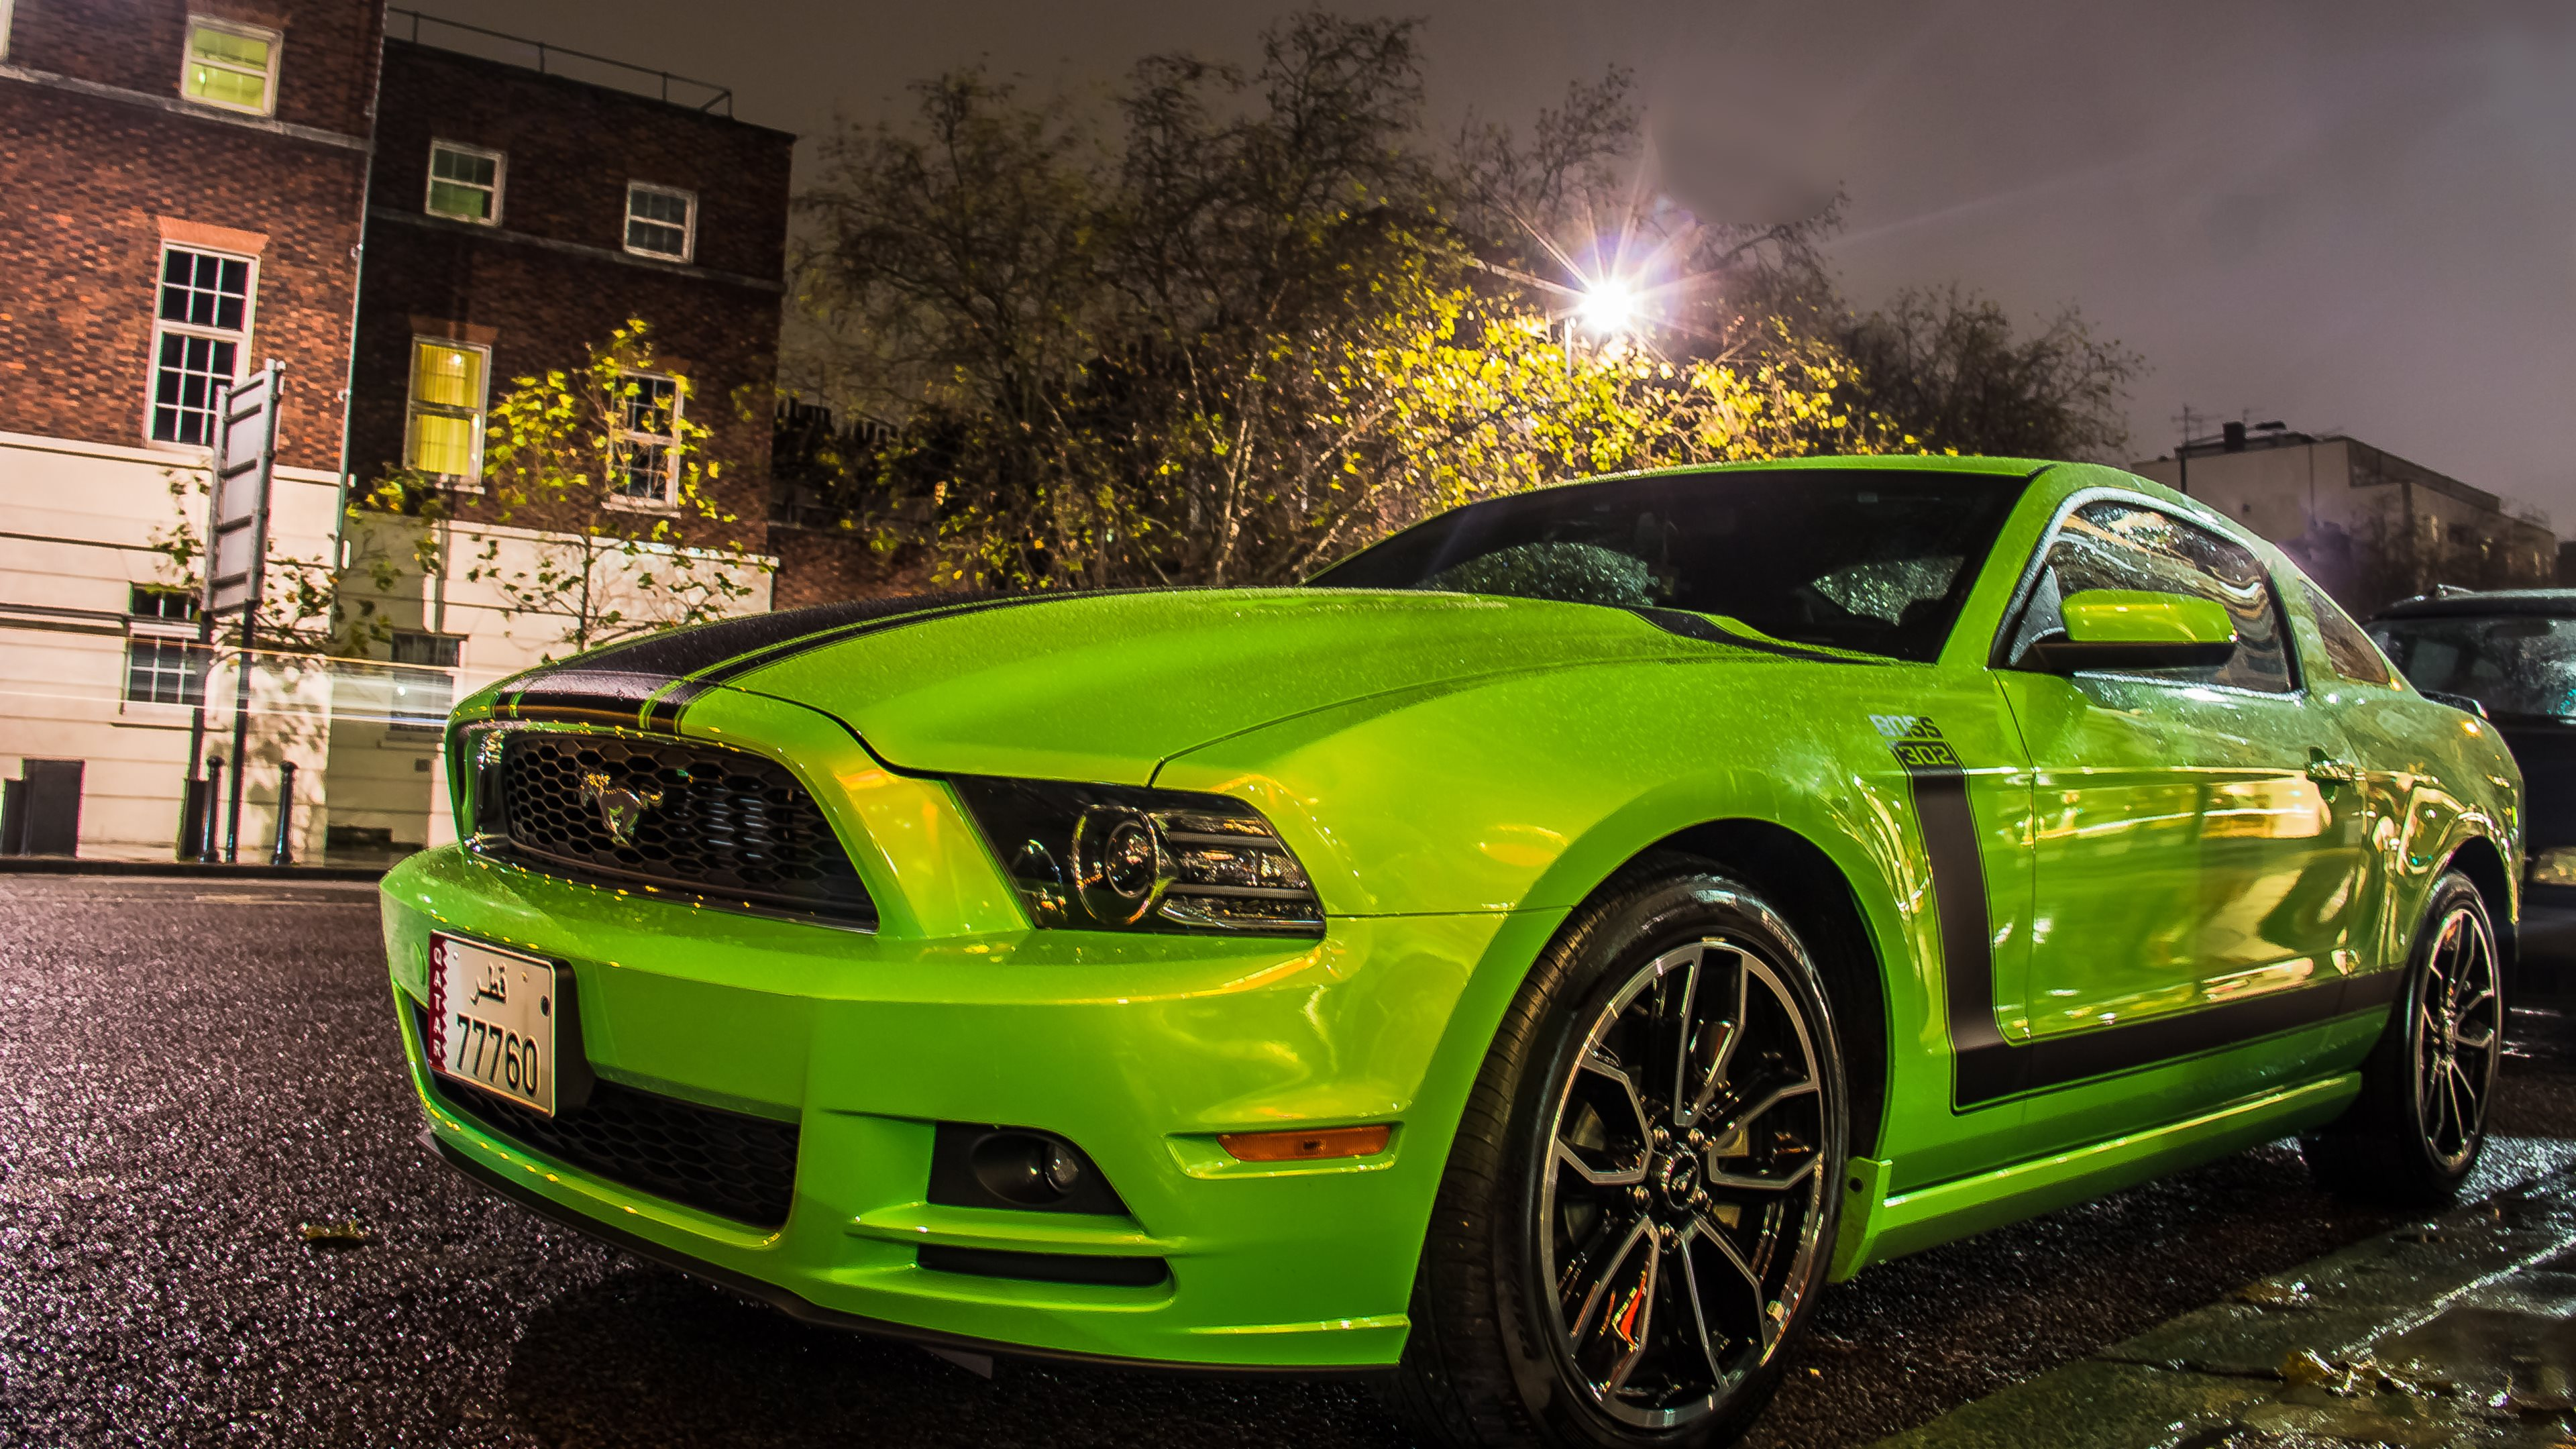 Ford Mustang Wallpapers, Pictures, Images